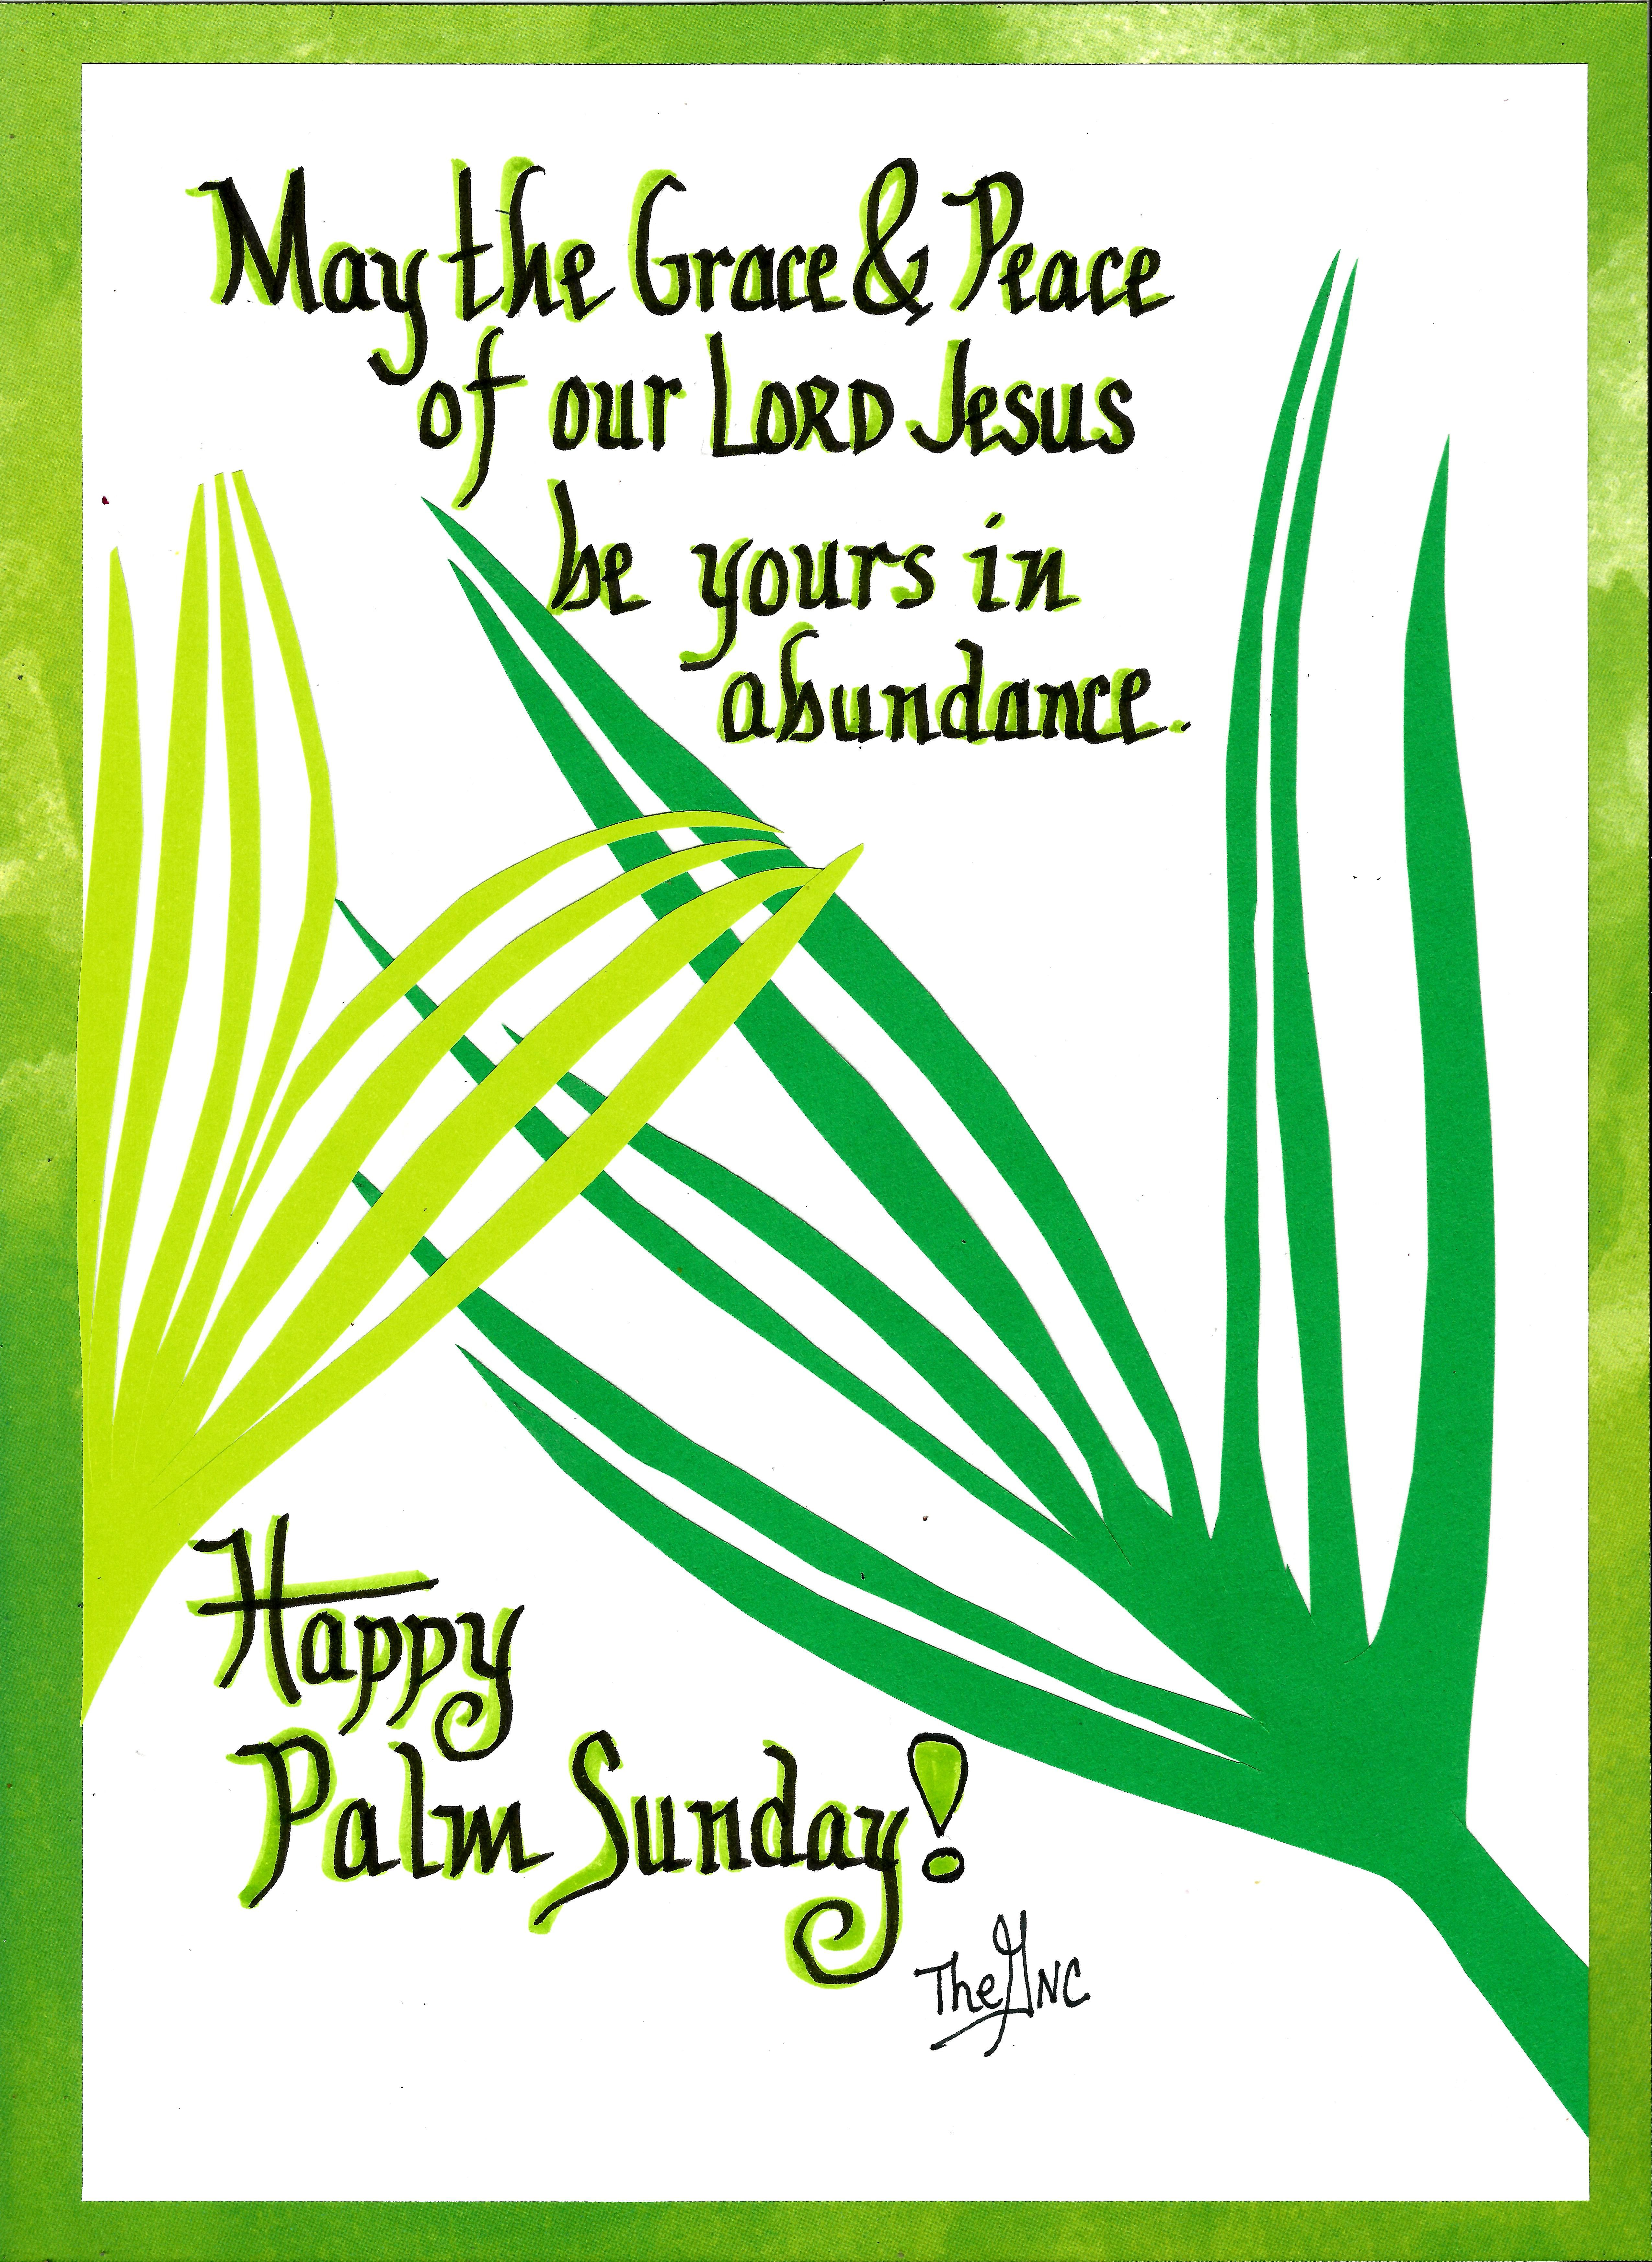 happy palm sunday from the good news cartoon to you!! www.facebook